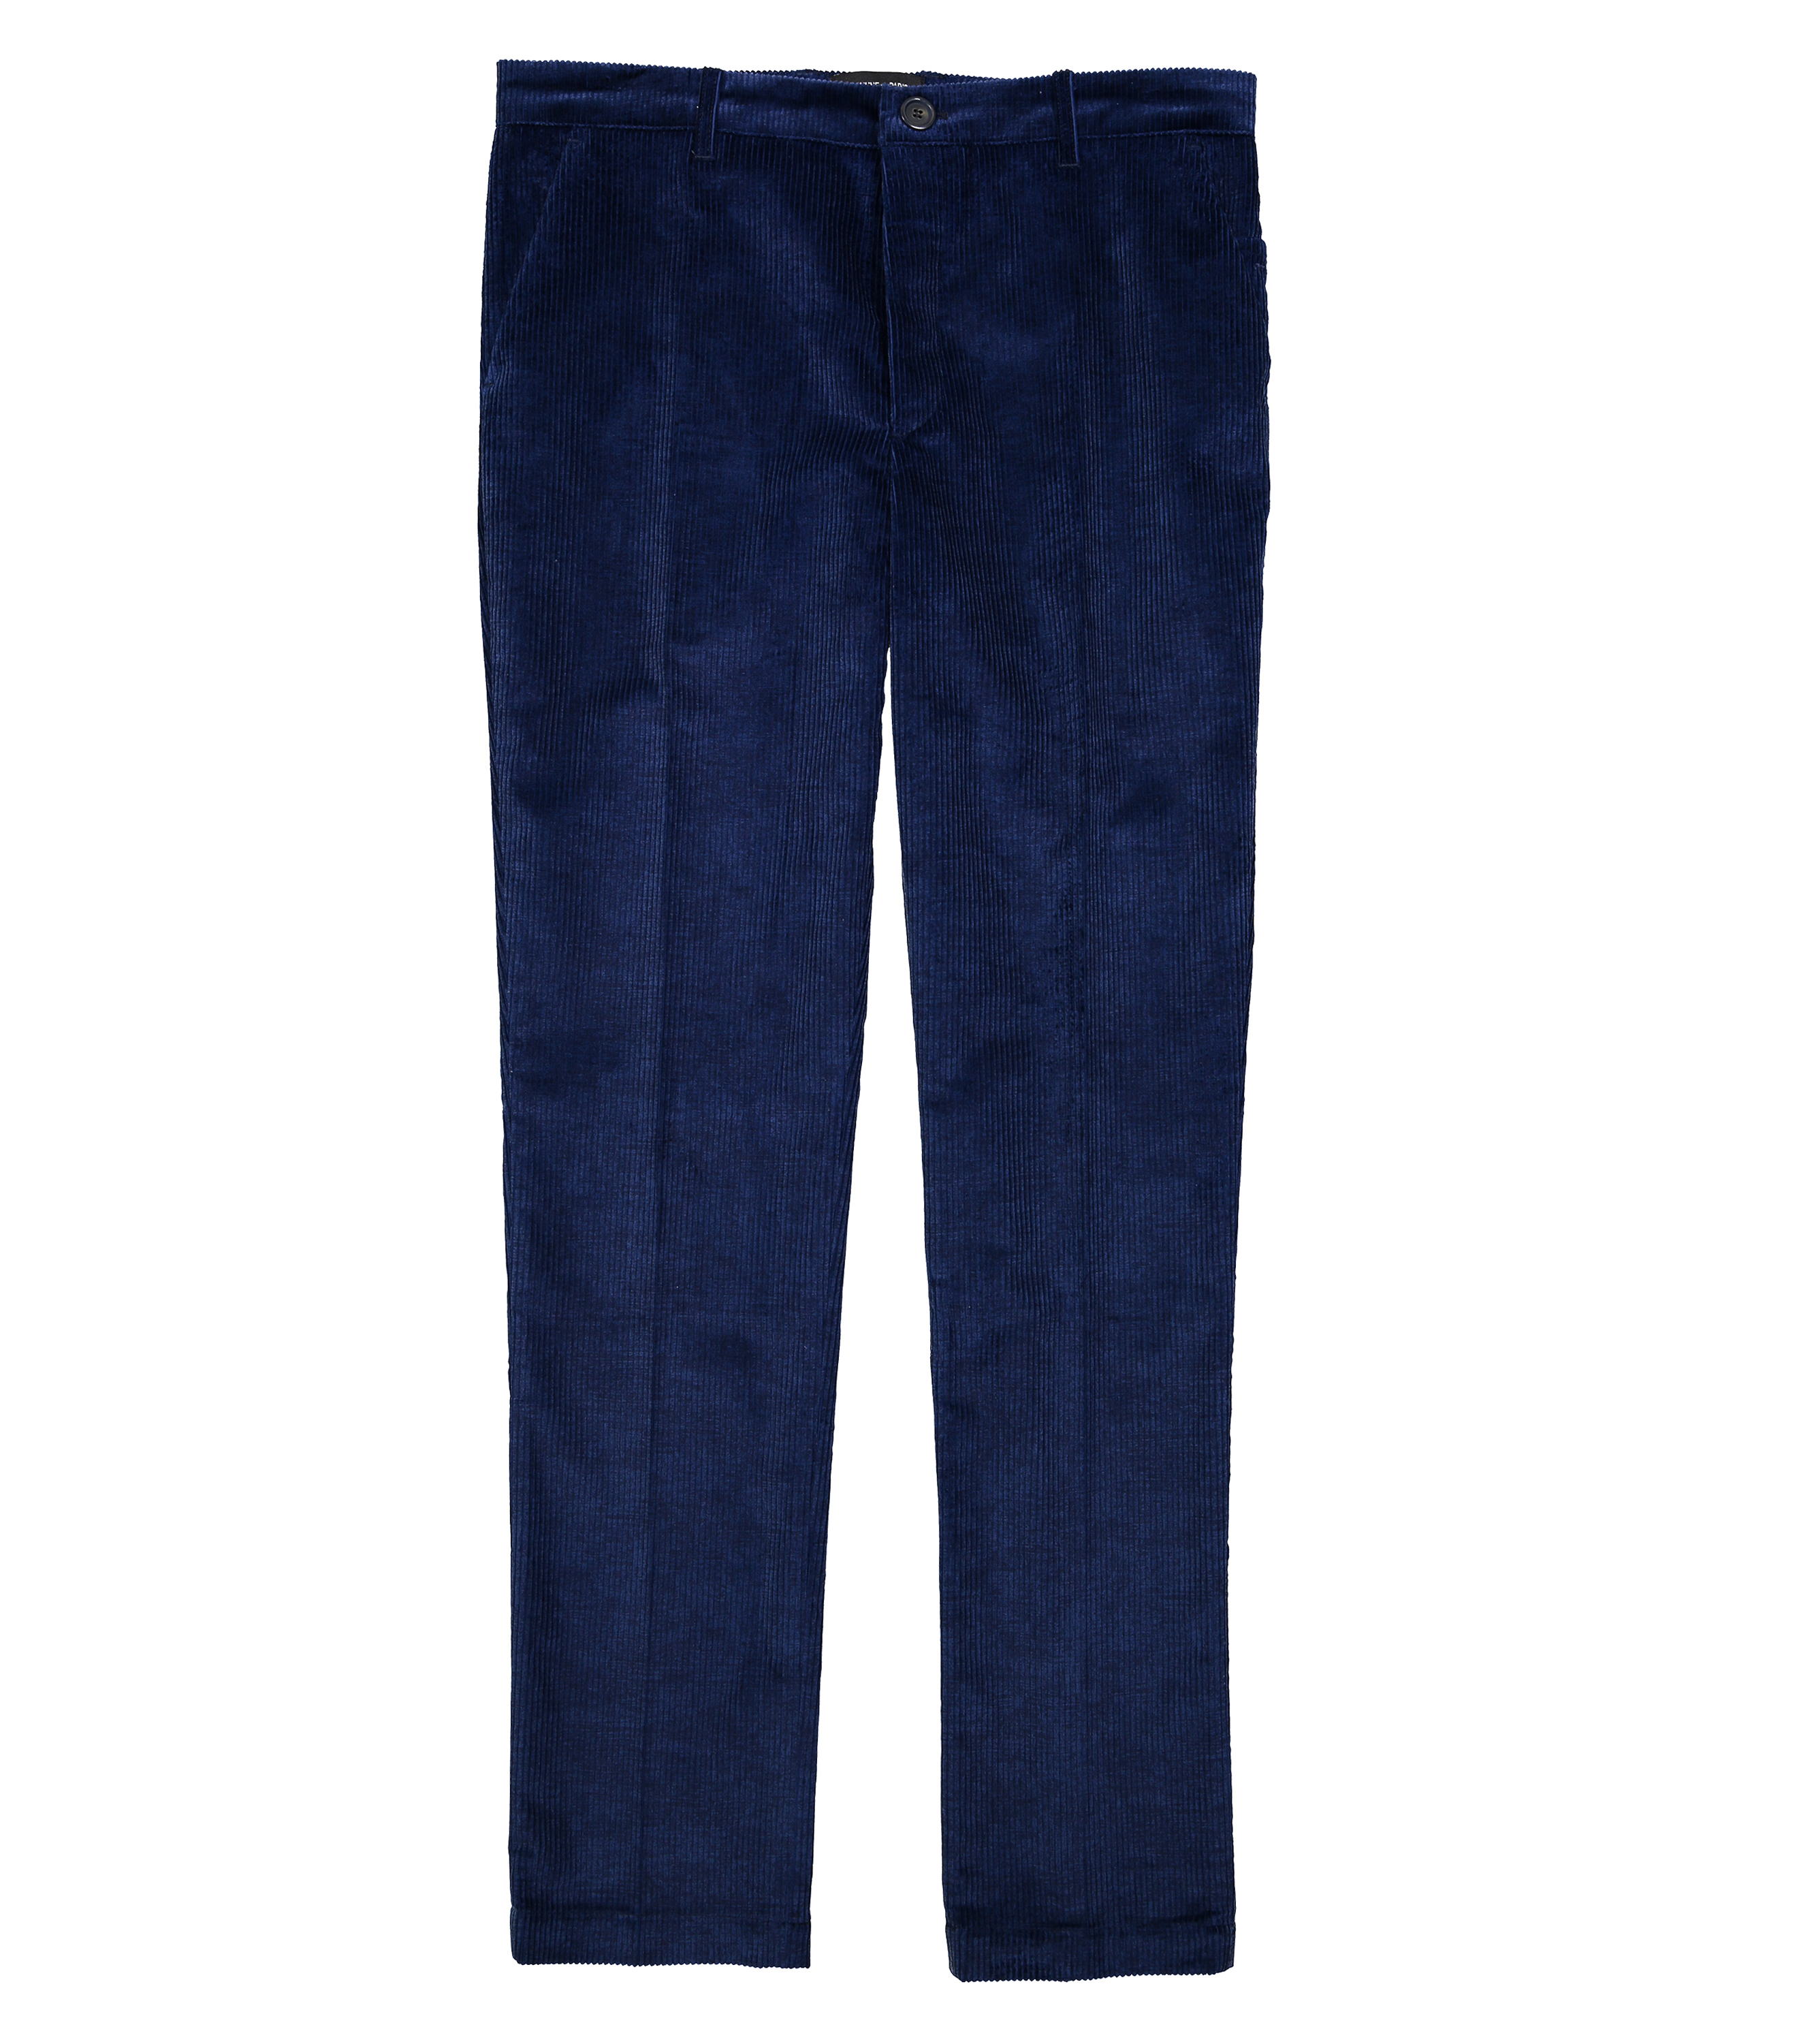 PANTS GN6 - Blue velvet